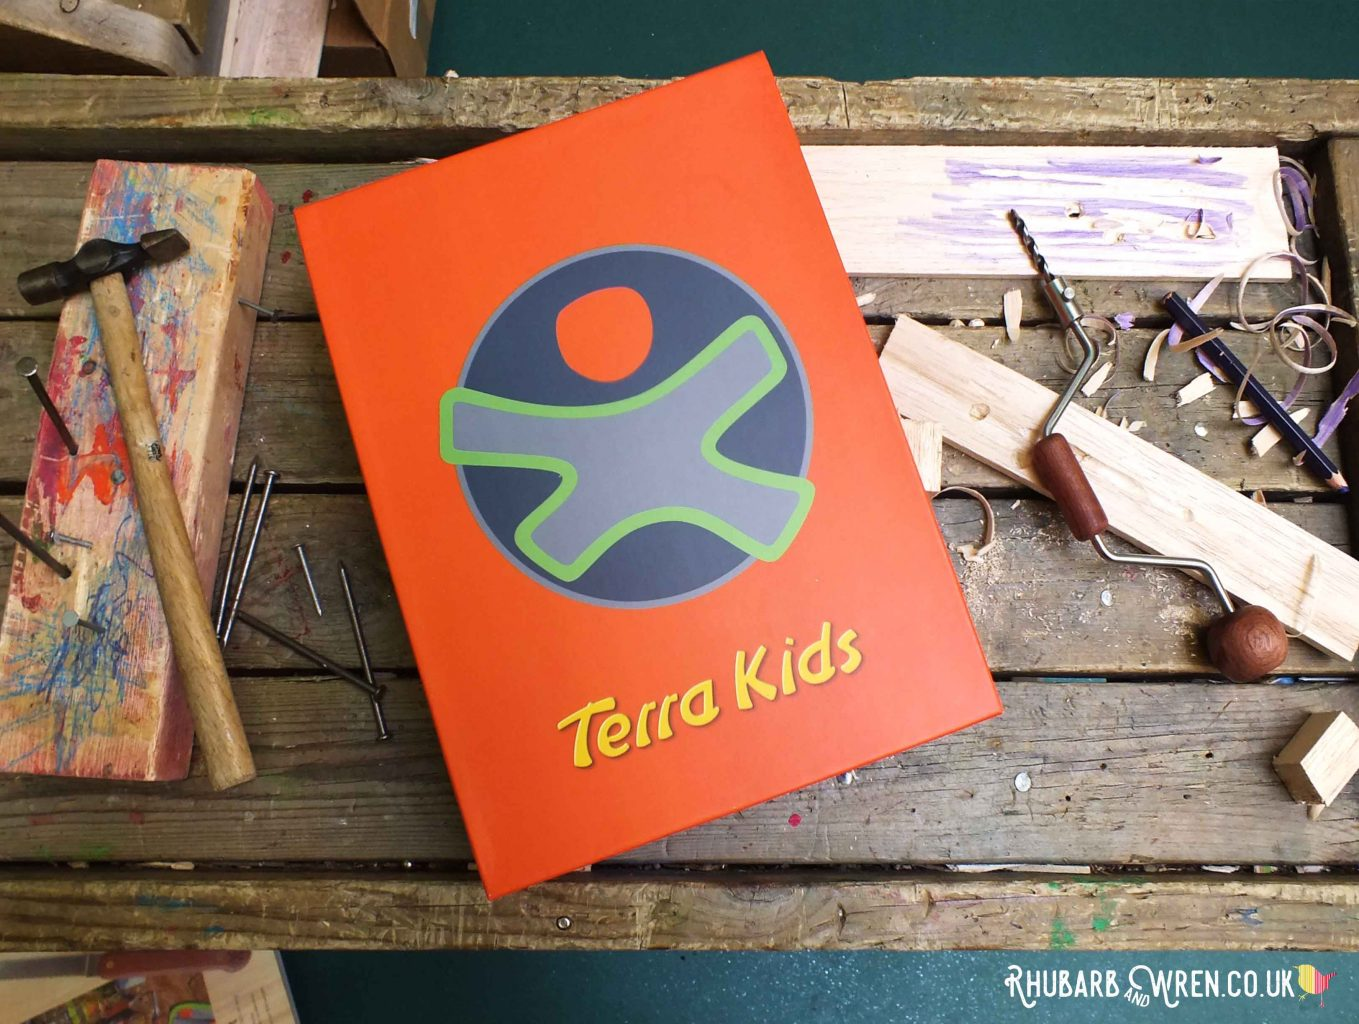 Box of HABA's Terra Kids tools on workbench